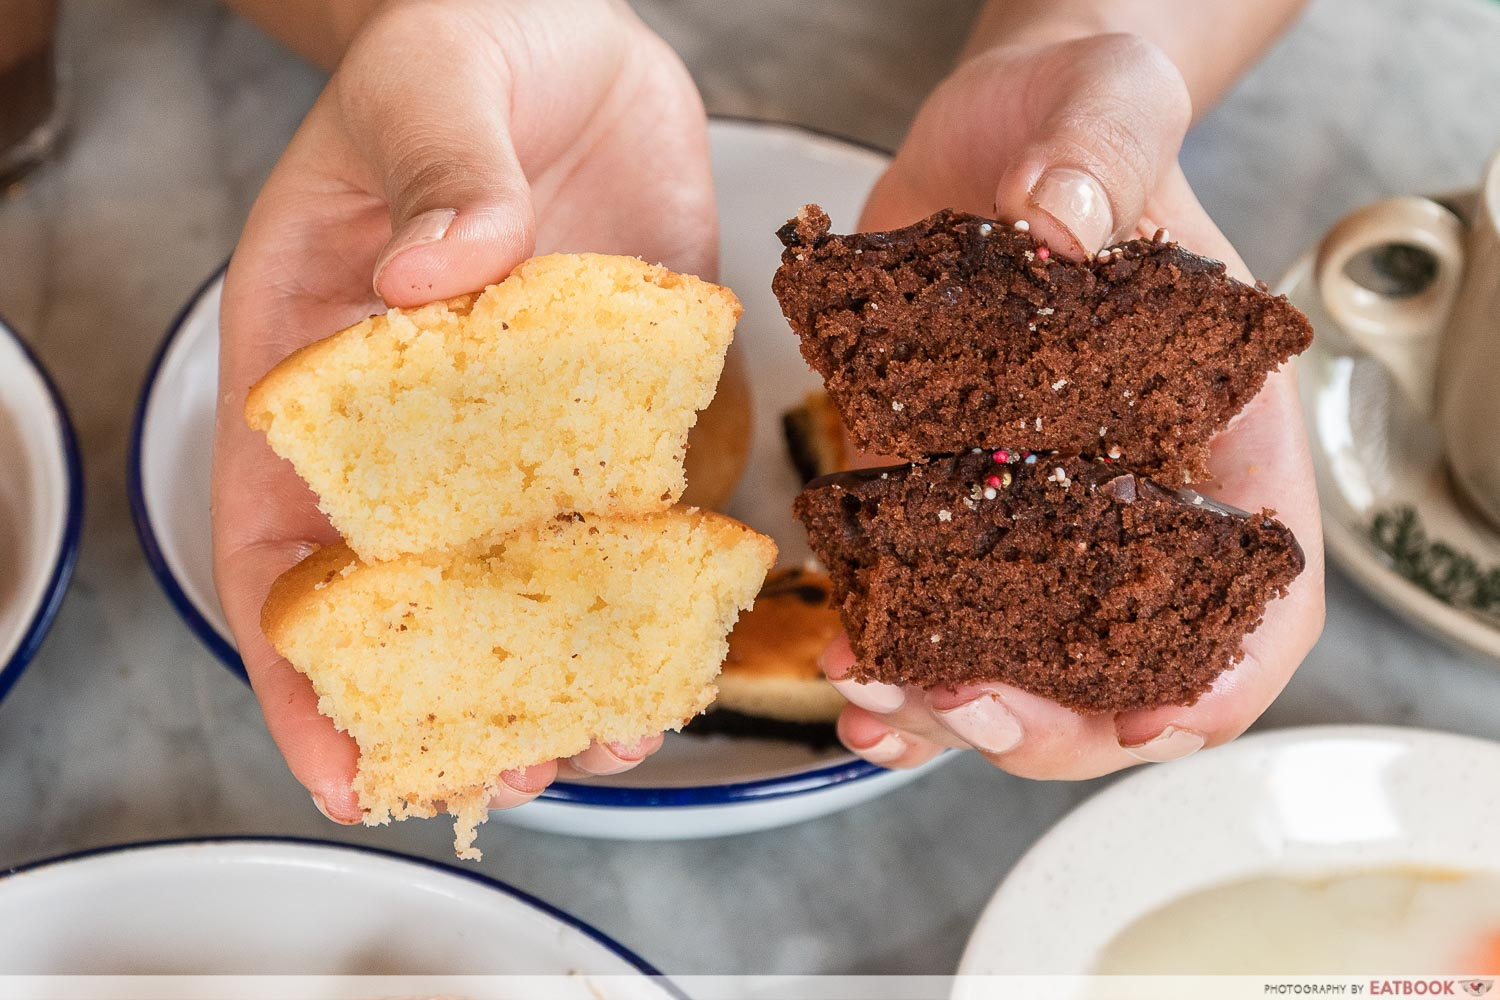 chin mee chin - cupcakes cross section